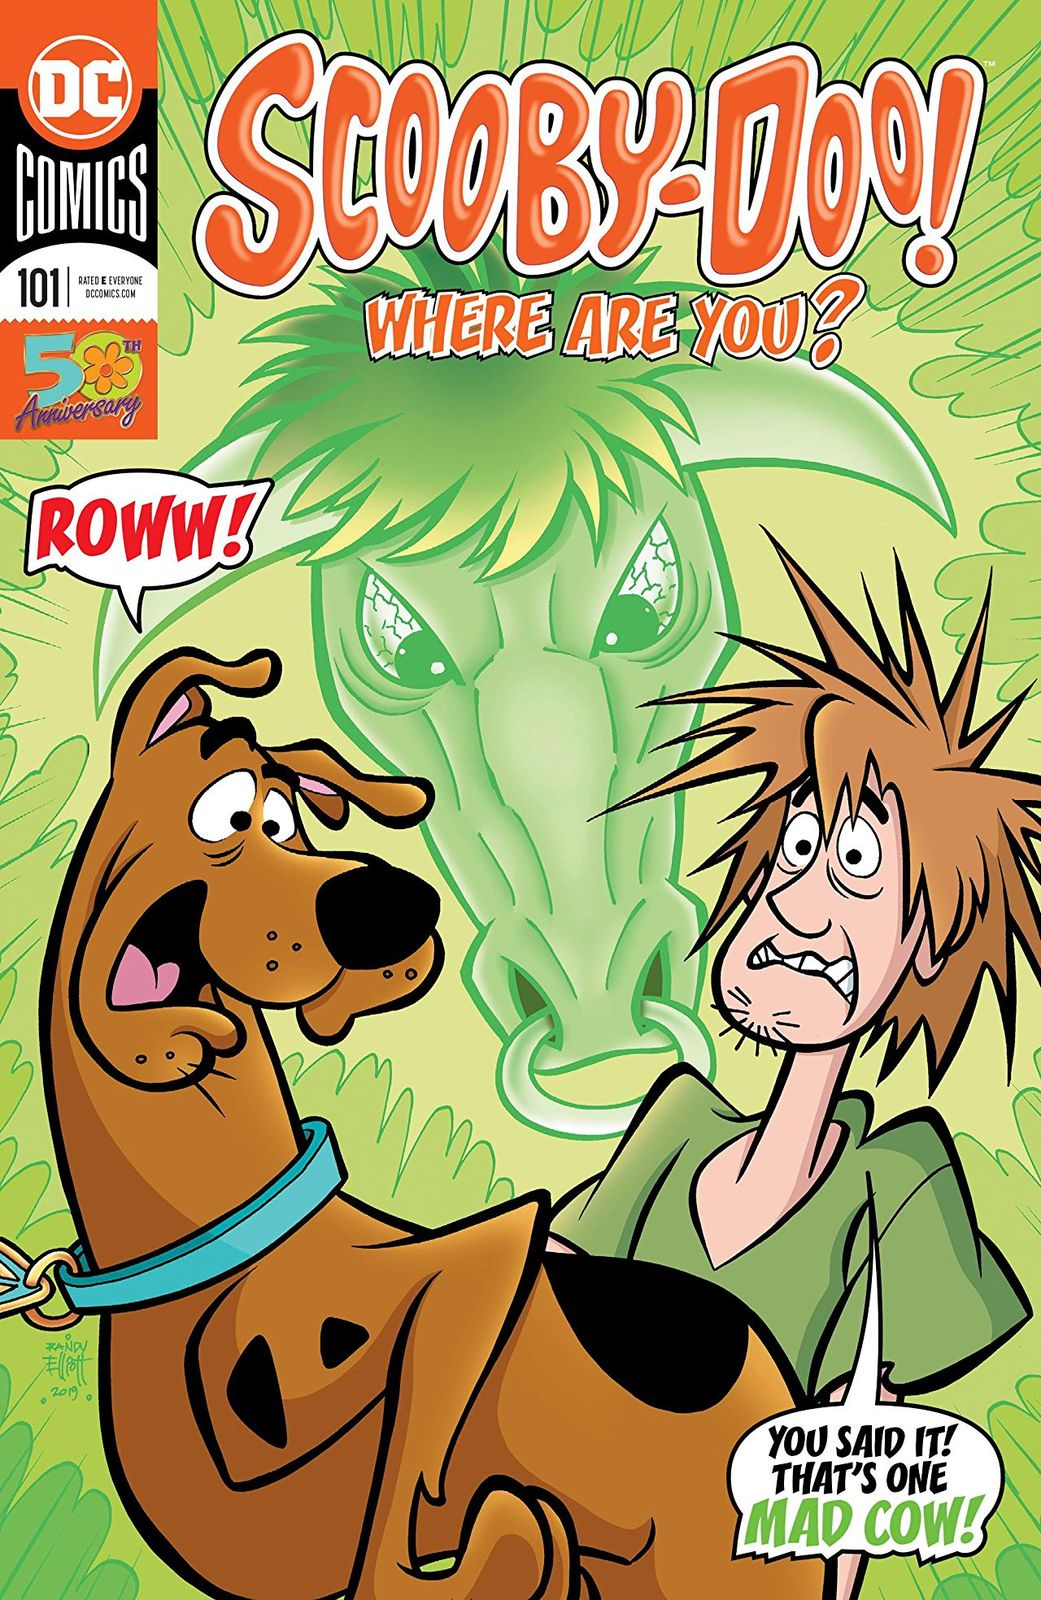 Scooby Doo: Where Are You - #101 (Cover A) by Sholly Fisch image